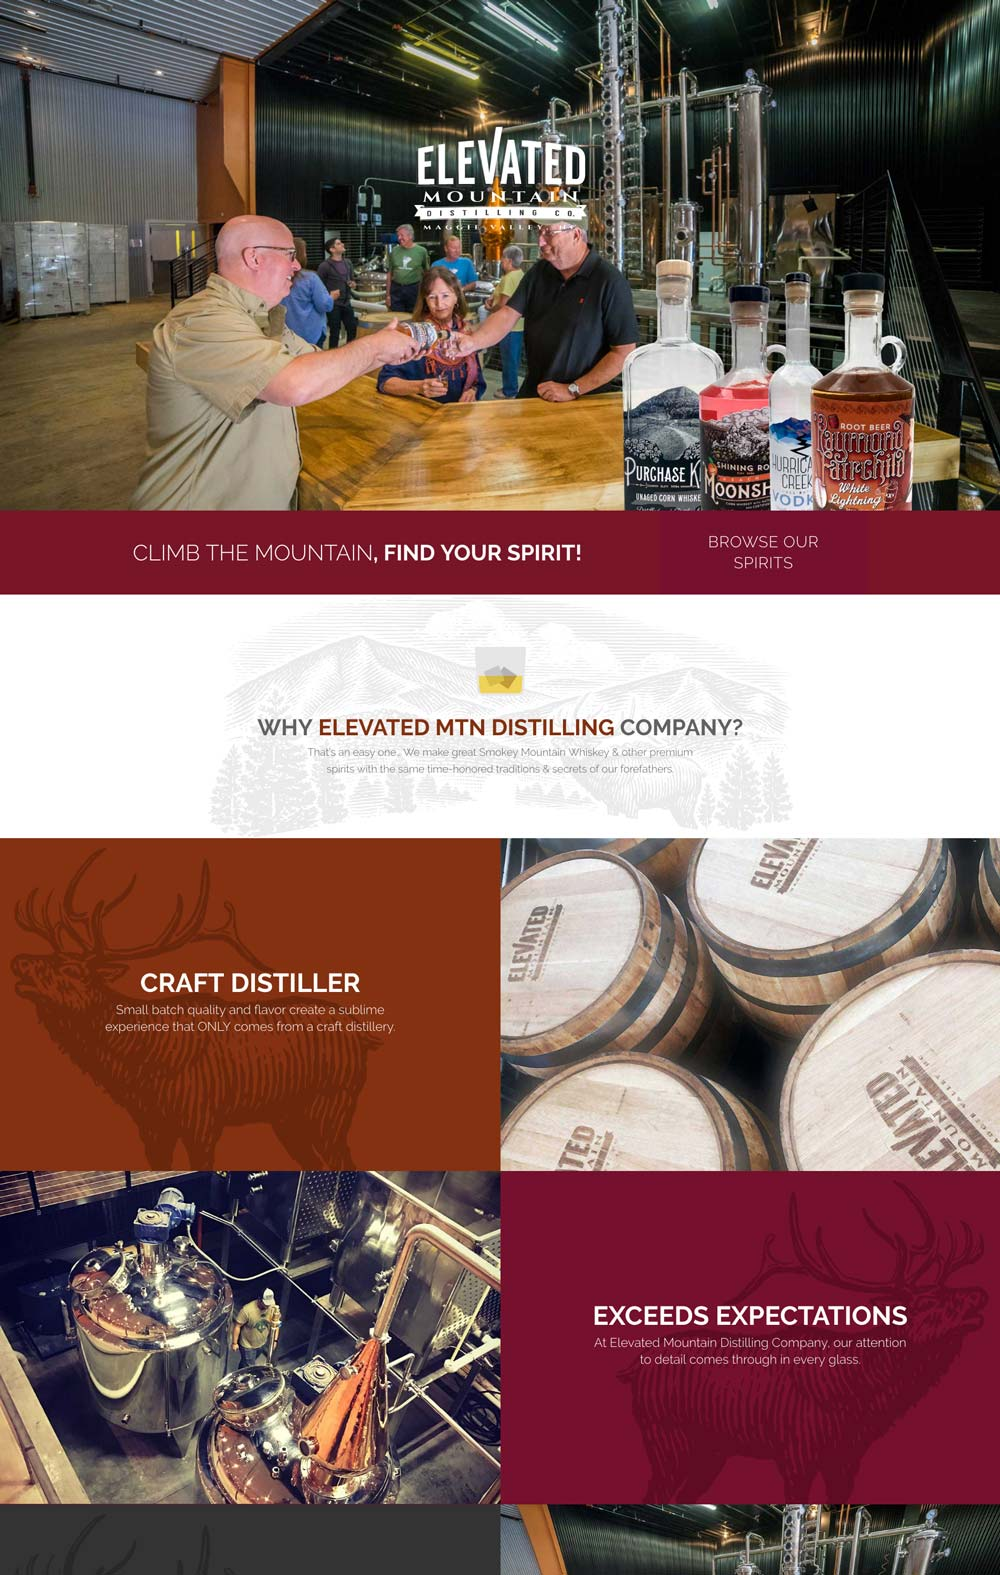 Elevated Mountain Distilling